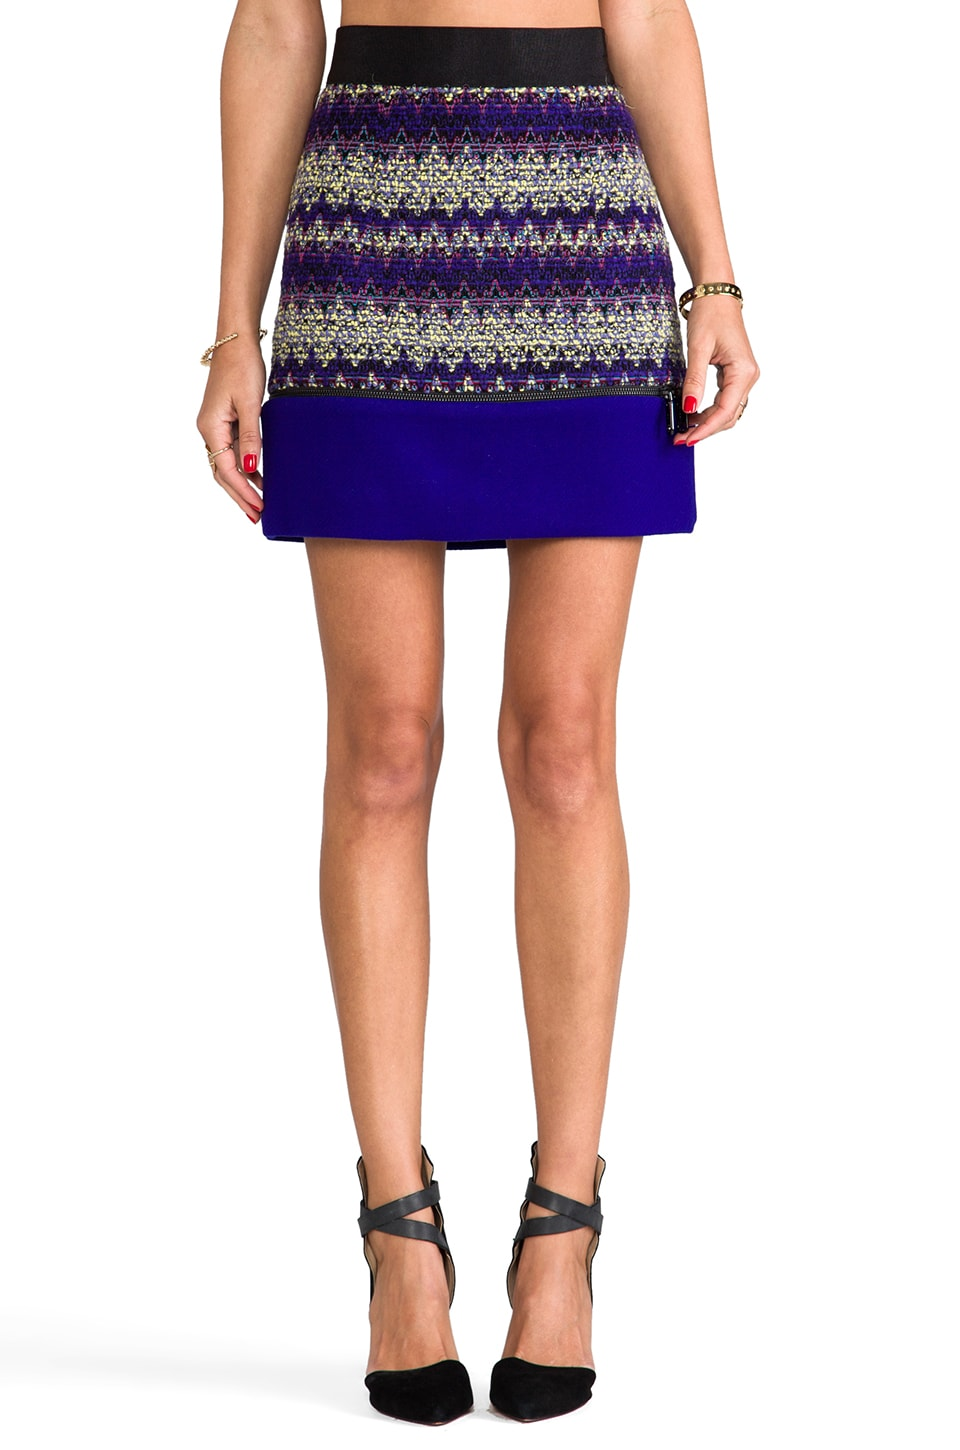 MILLY Zig Zag Tweed Zipper Mini Skirt in Violet